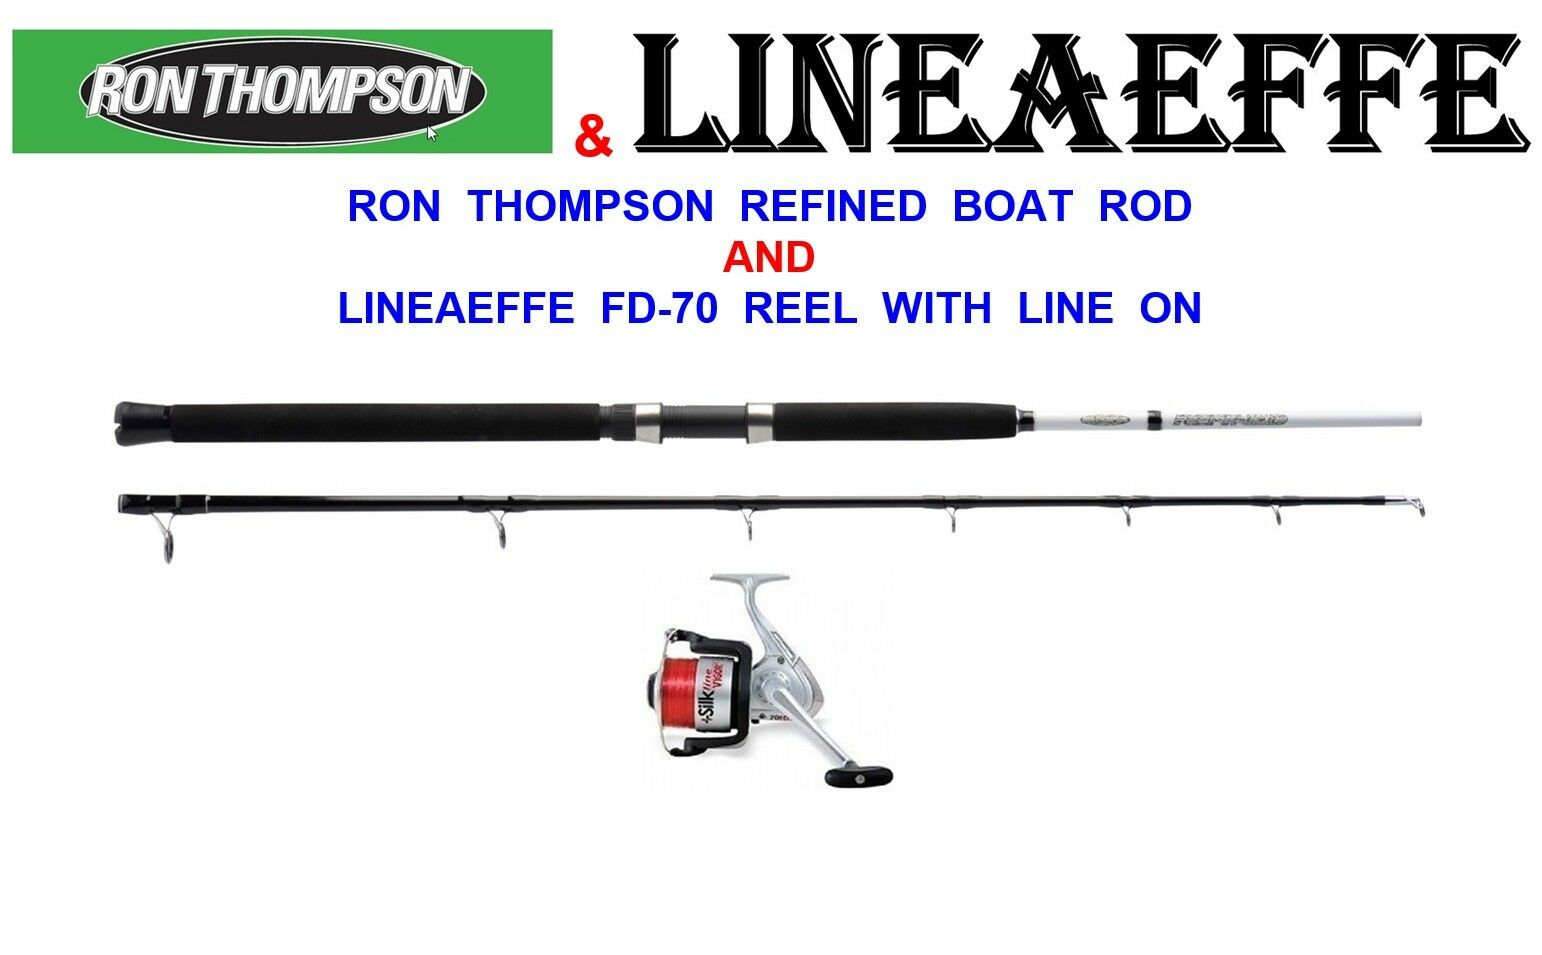 RON THOMSON 7ft BOAT ROD FD-70 REEL LINE SEA UPTIDE FISCHEREI